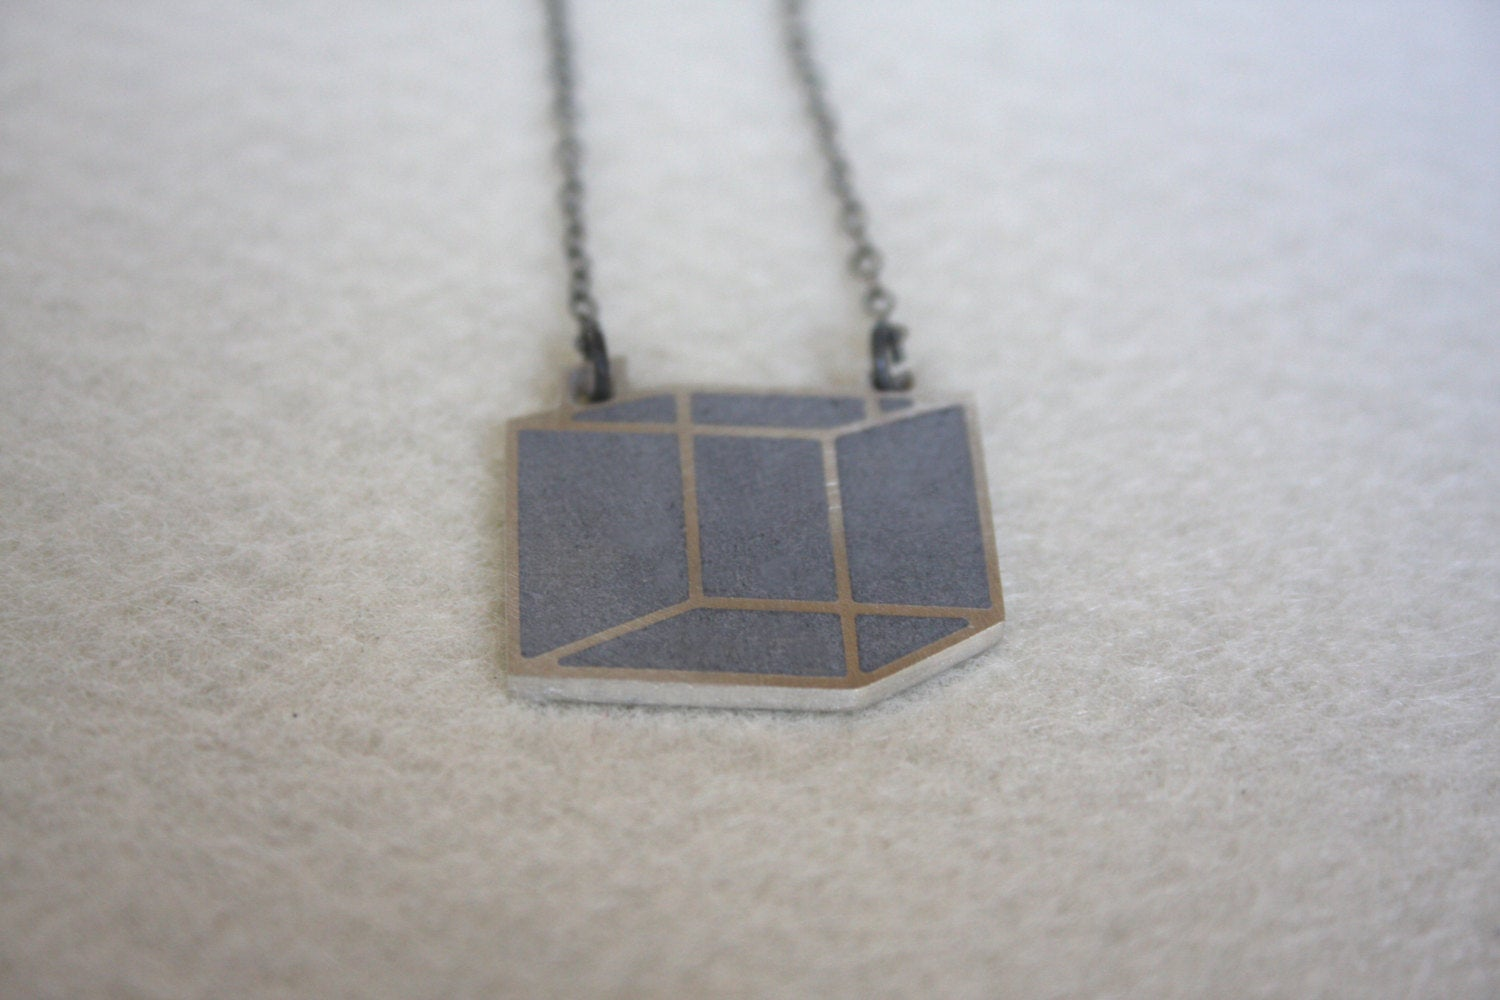 SALE 50% OFF - Unique Industrial 3D Gold Cube Necklace - hs